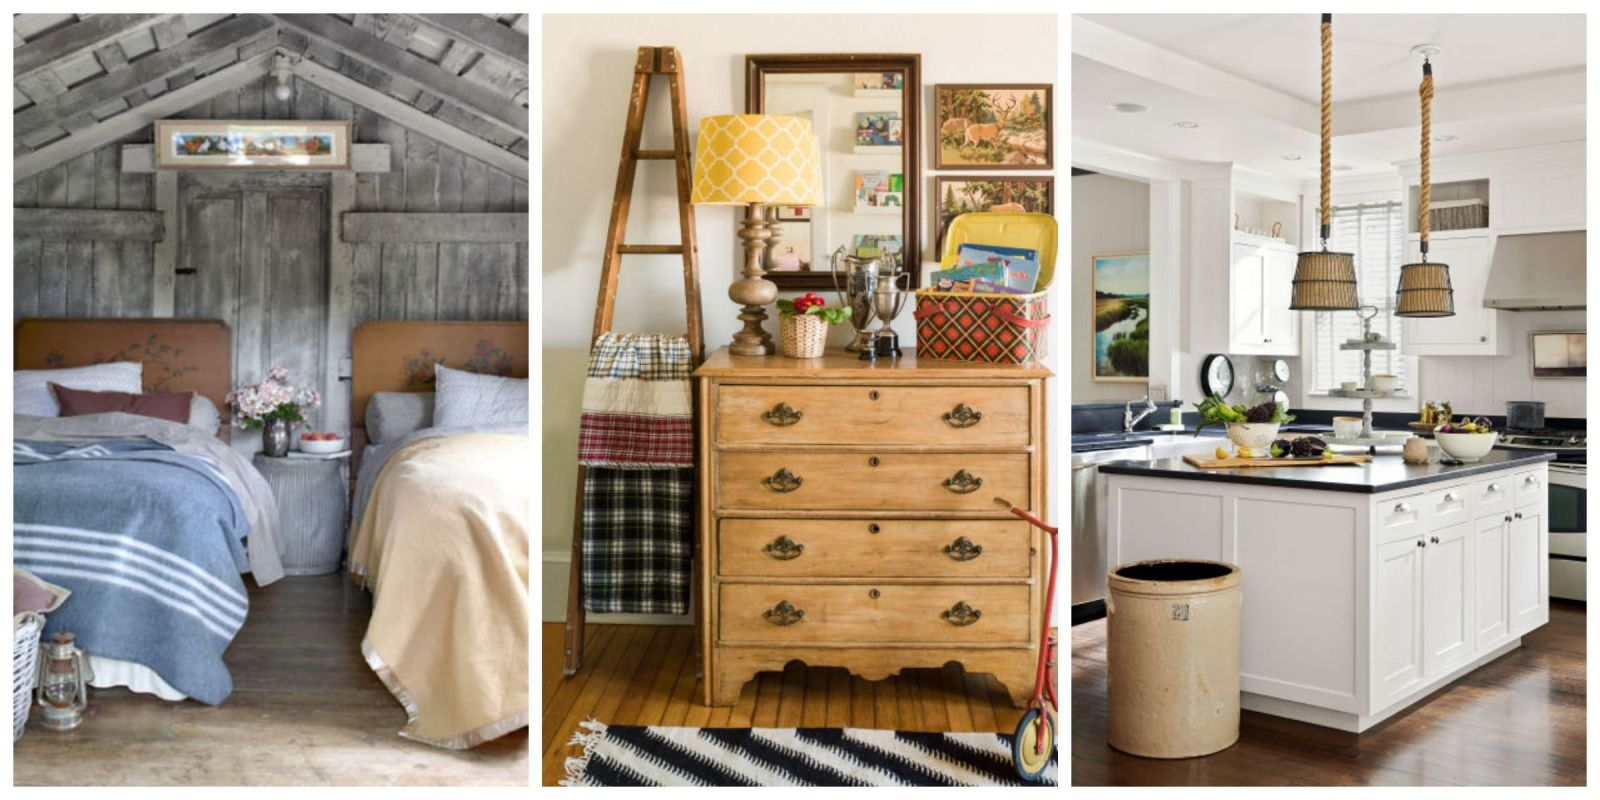 34 Clever Ways to Upcycle Flea Market Finds Into Stylish Home ...